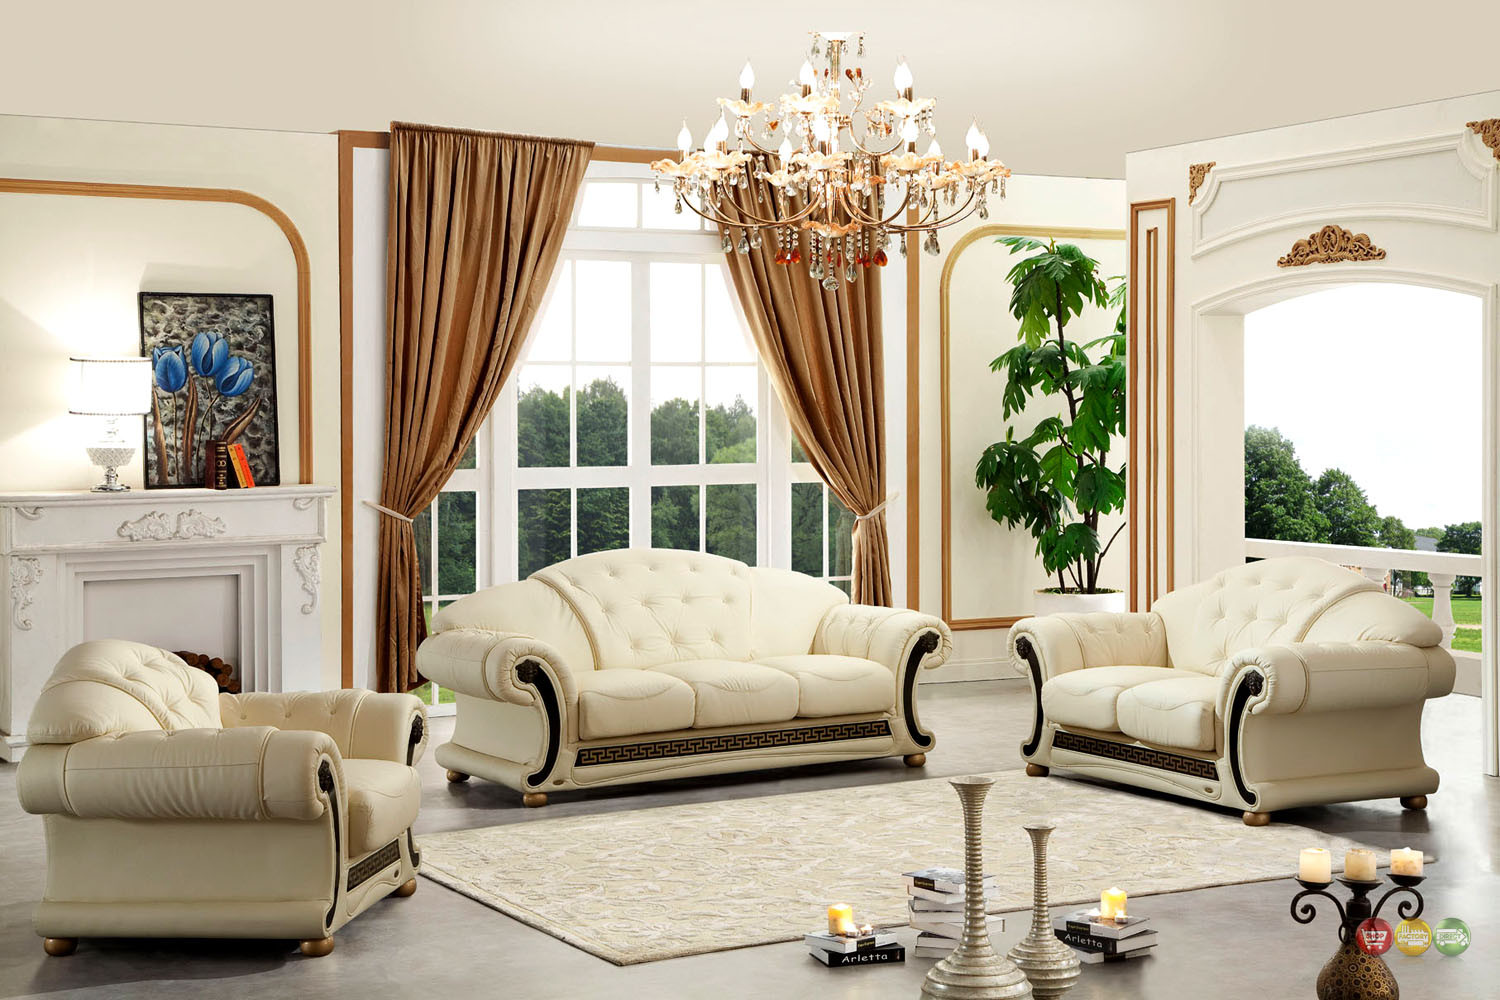 Best ideas about Italian Sofa Set . Save or Pin Versace Cleopatra Cream Italian Top Grain Leather Beige Now.